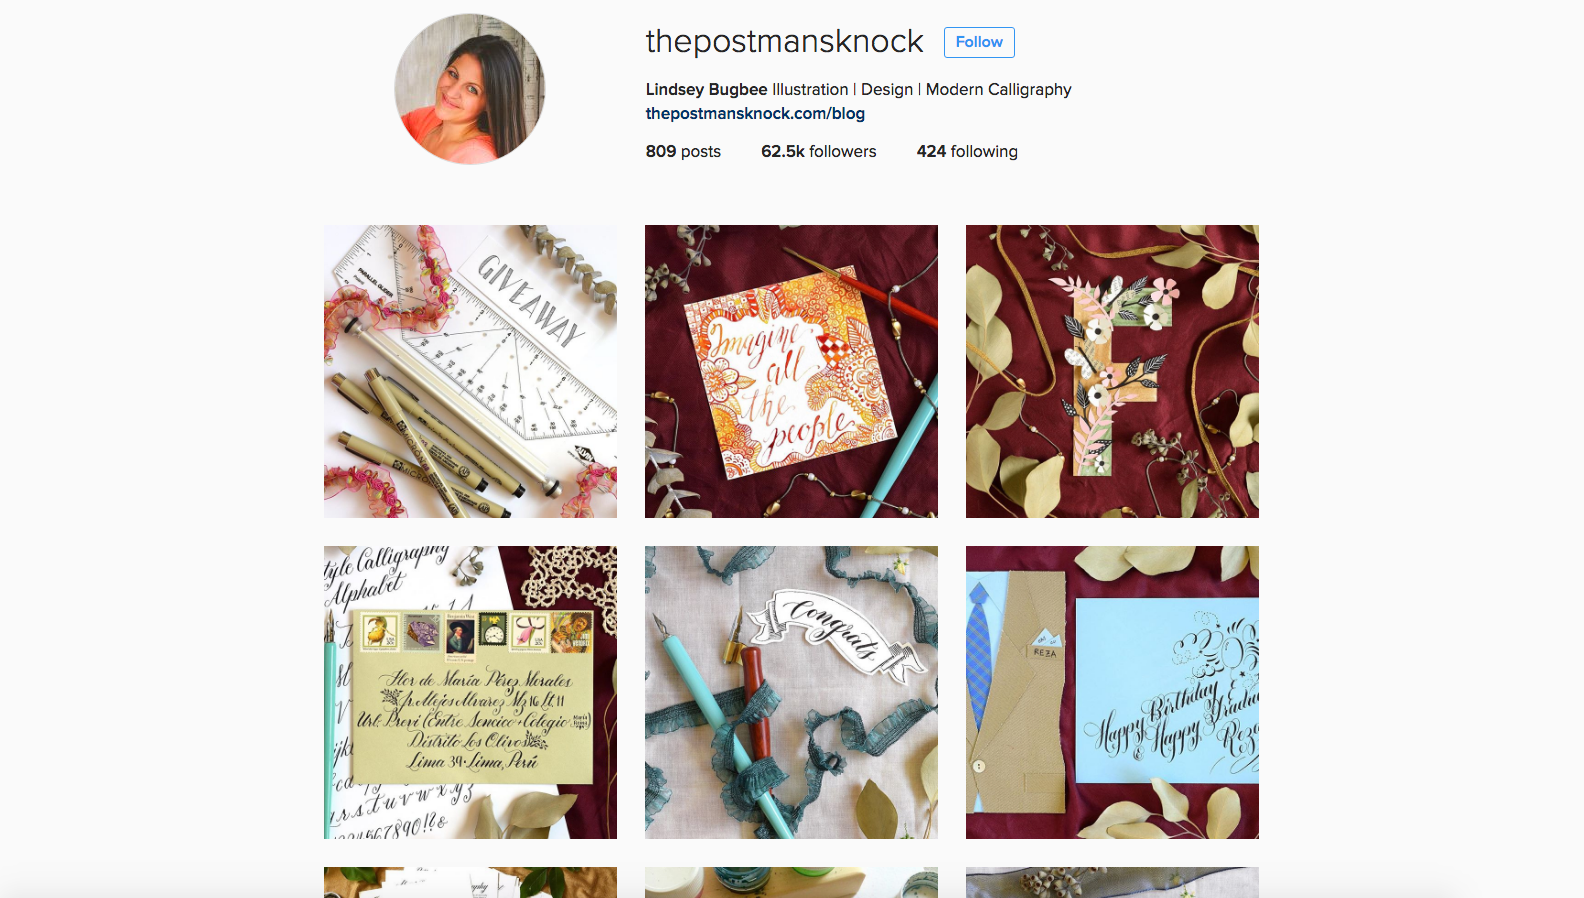 Three Fantastic Resources for Artistic Inspiration   The Postman's Knock